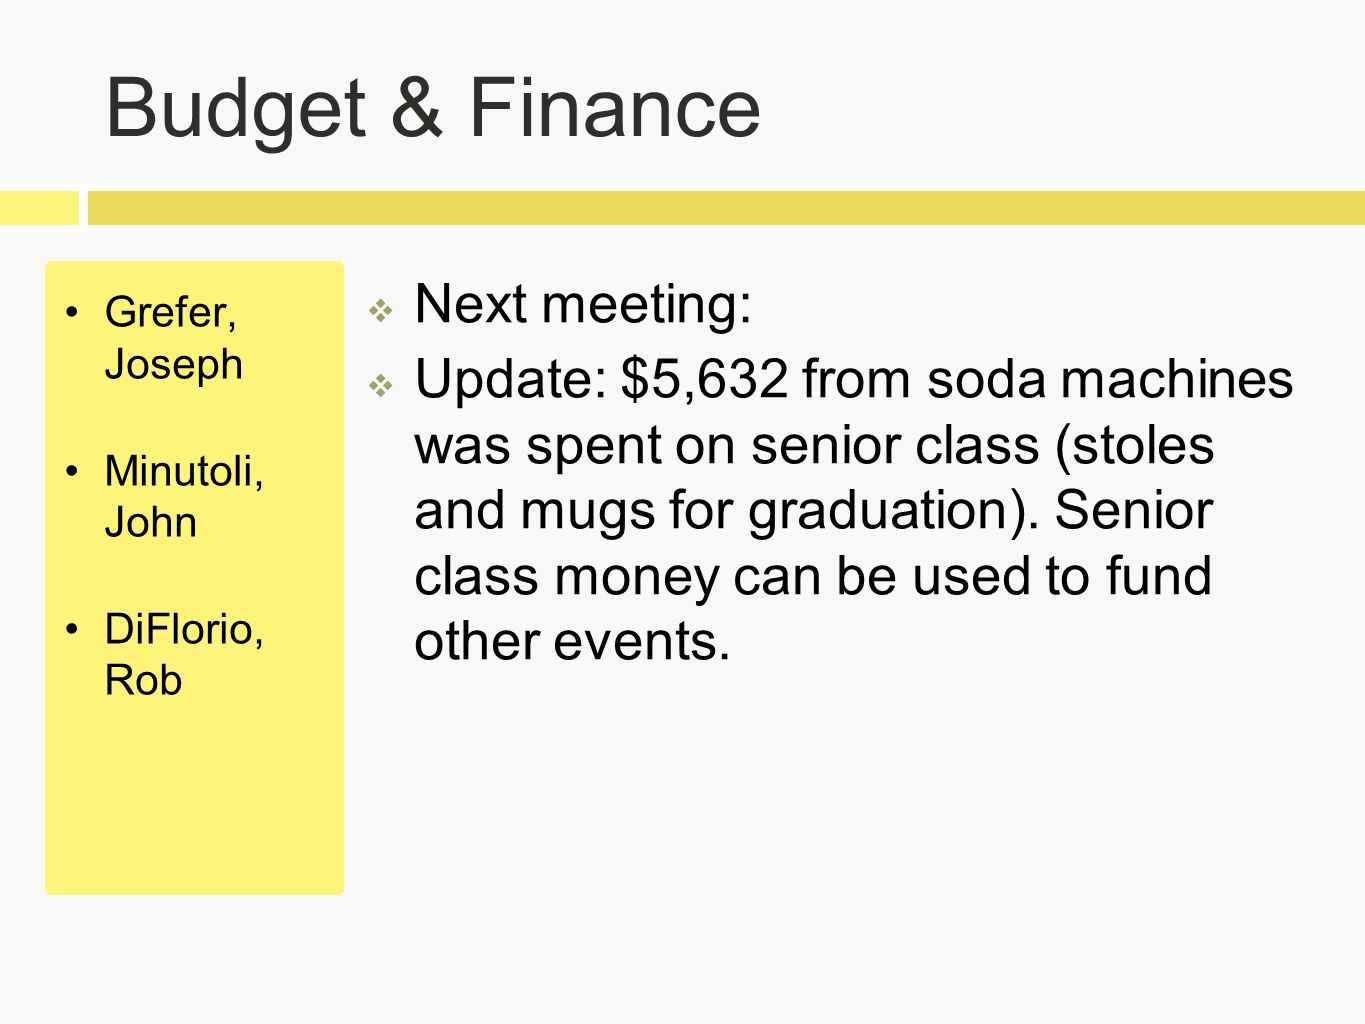 Budget & Finance Grefer, Joseph Minutoli, John DiFlorio, Rob  Next meeting:  Update: $5,632 from soda machines was spent on senior class (stoles and mugs for graduation).